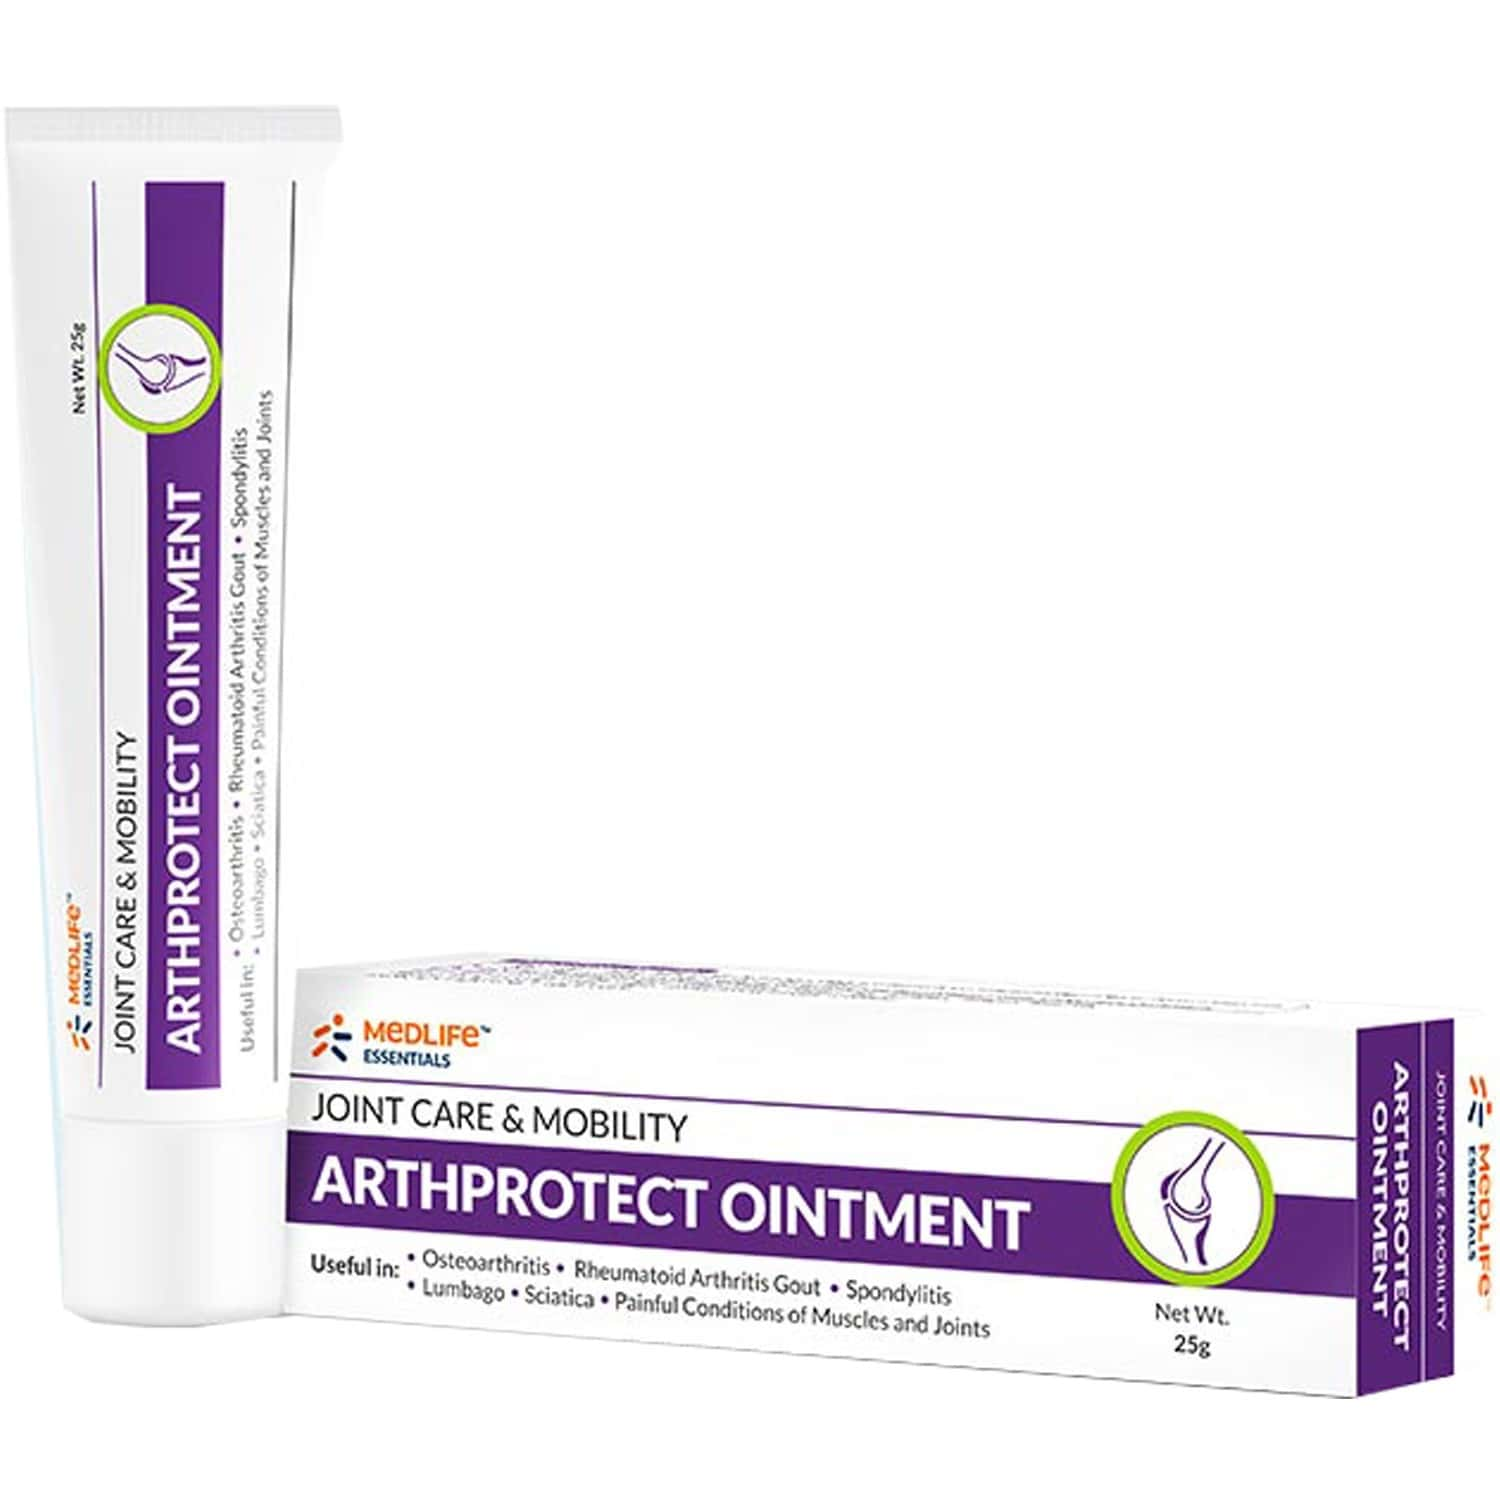 Medlife Essentials Arthprotect Ointment 25 Gm